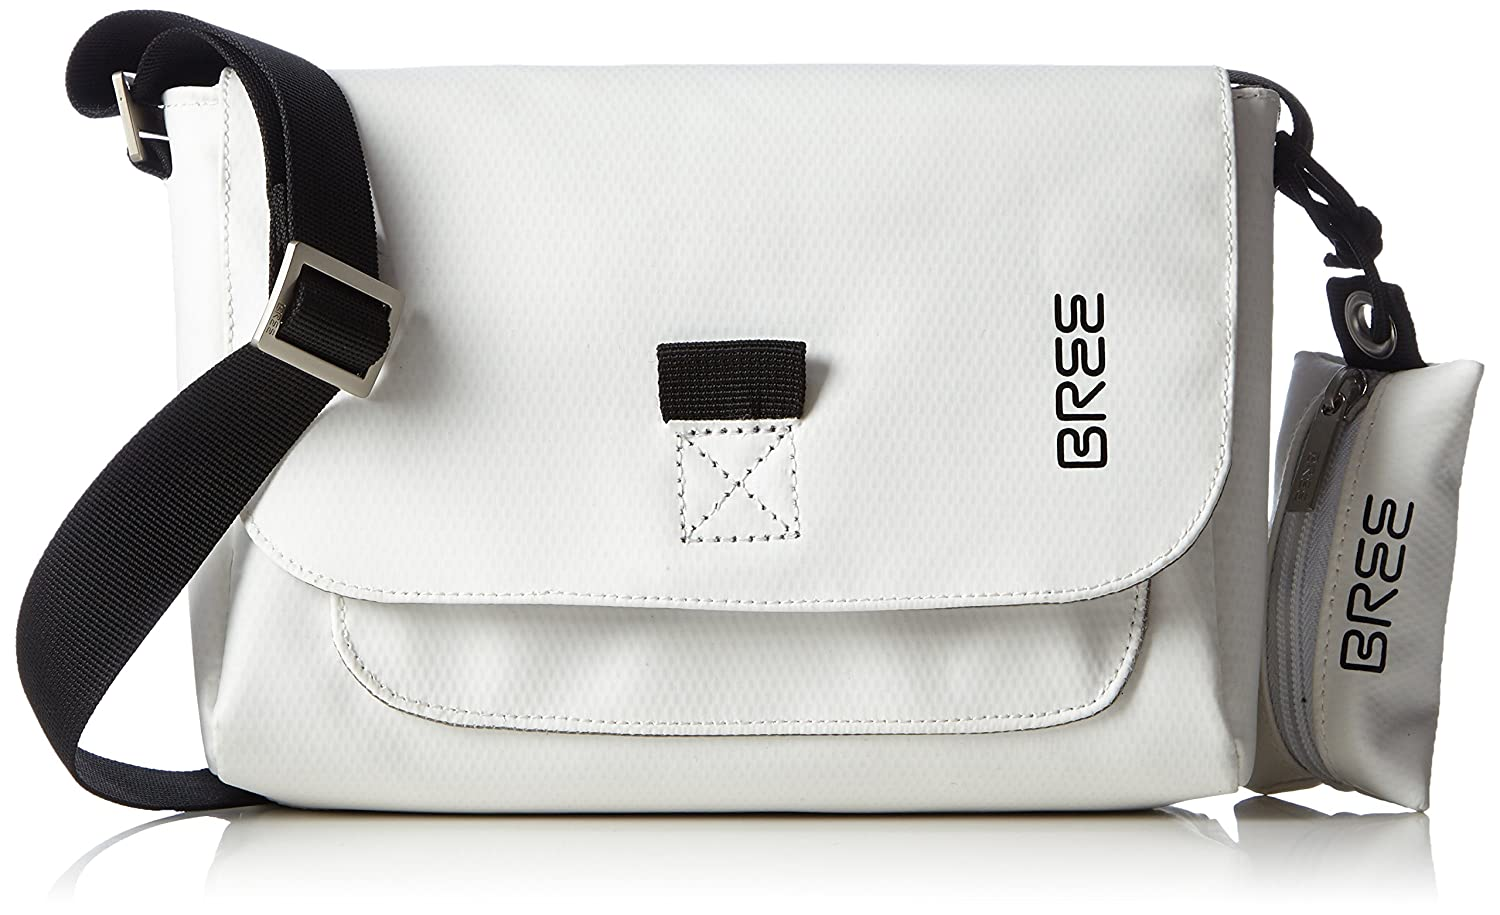 Women 83508701 Cross-Body Bag Bree Free Shipping Latest Collections Discount Looking For iC7EAZLU